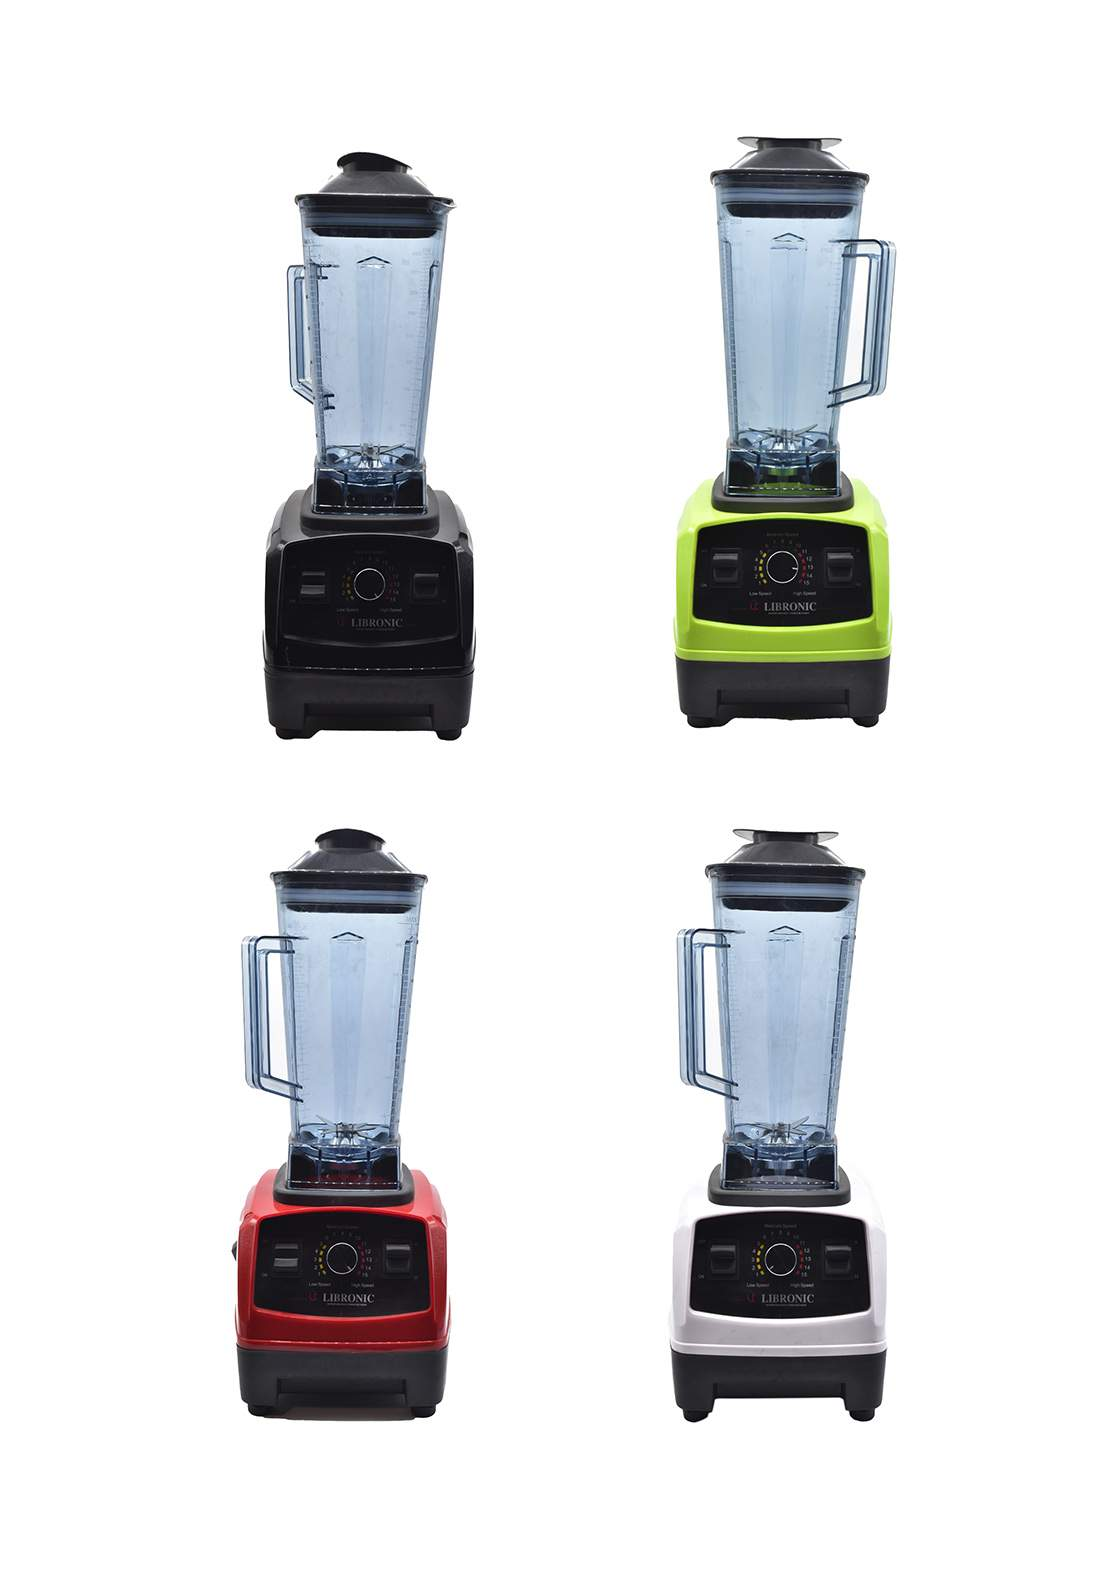 Libronic LC-920 An Electric Mixer خلاط كهربائي